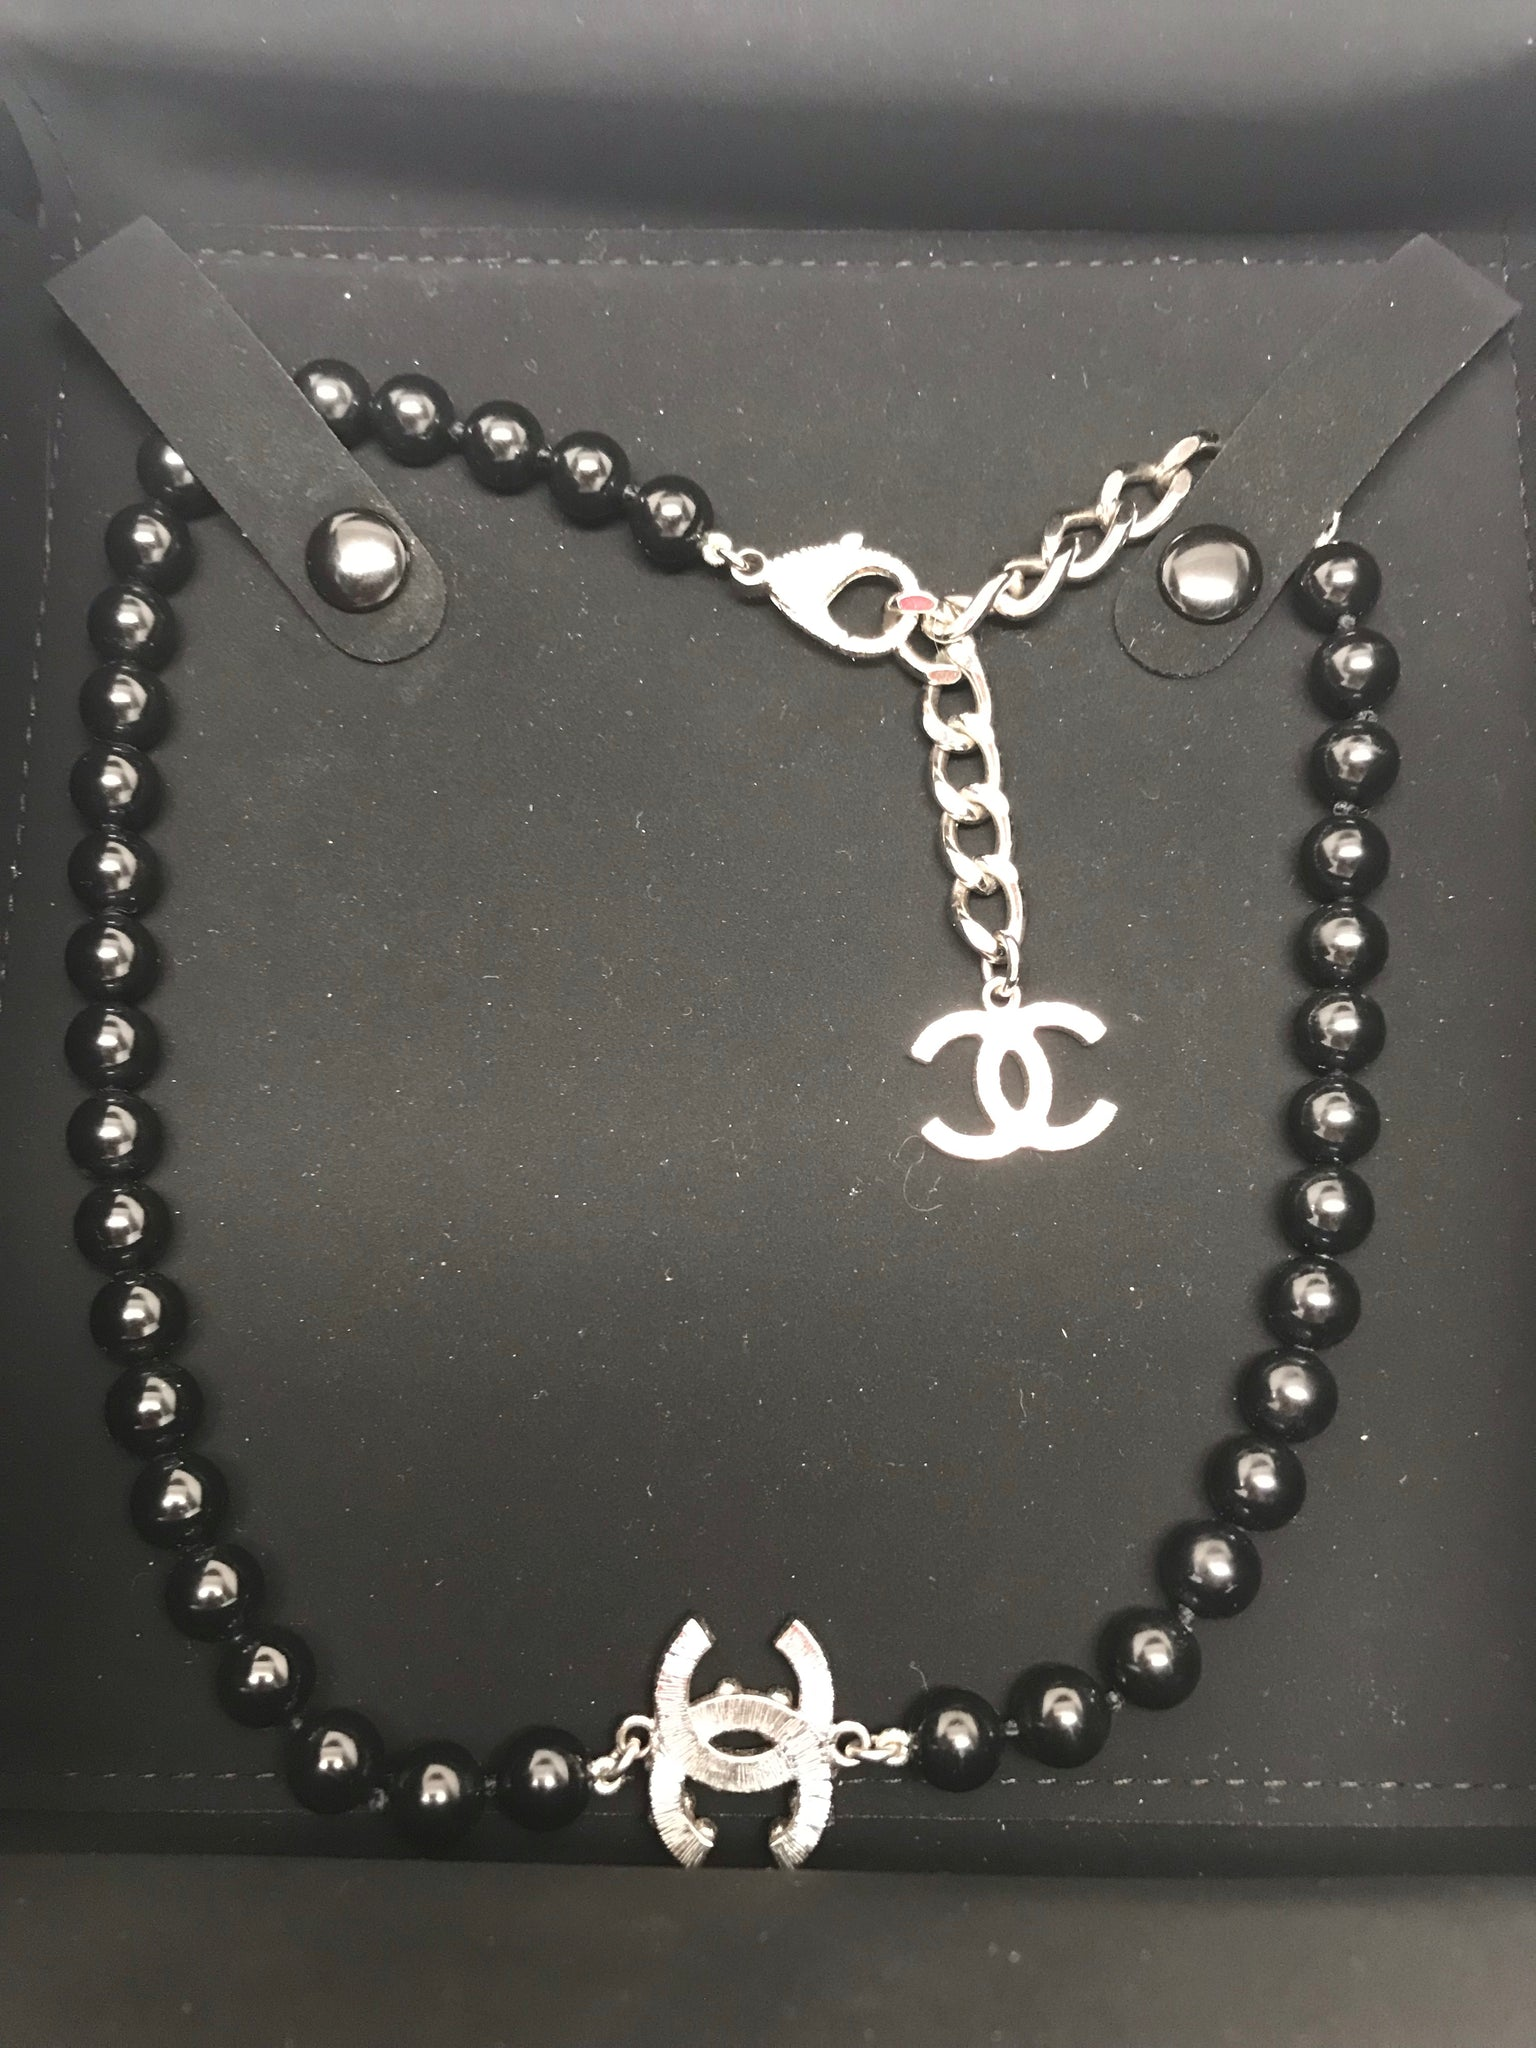 CHANEL CLASSIC EMBELLISHED BLACK PEARL CC CHOKER NECKLACE